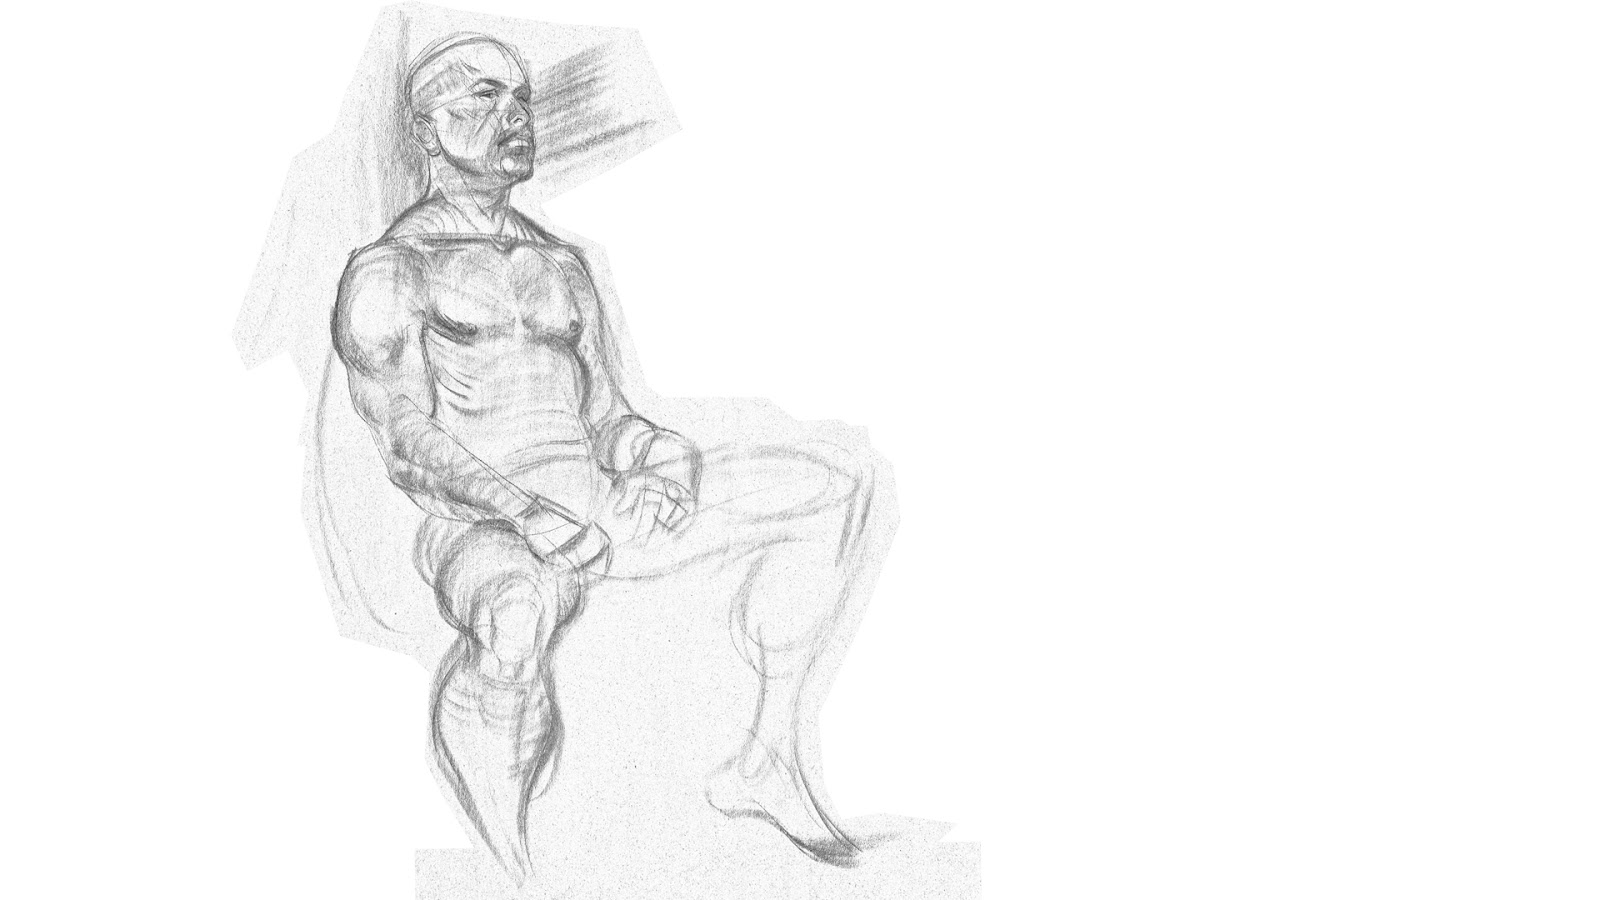 Character Design From Life Drawing : Alan life drawing character design